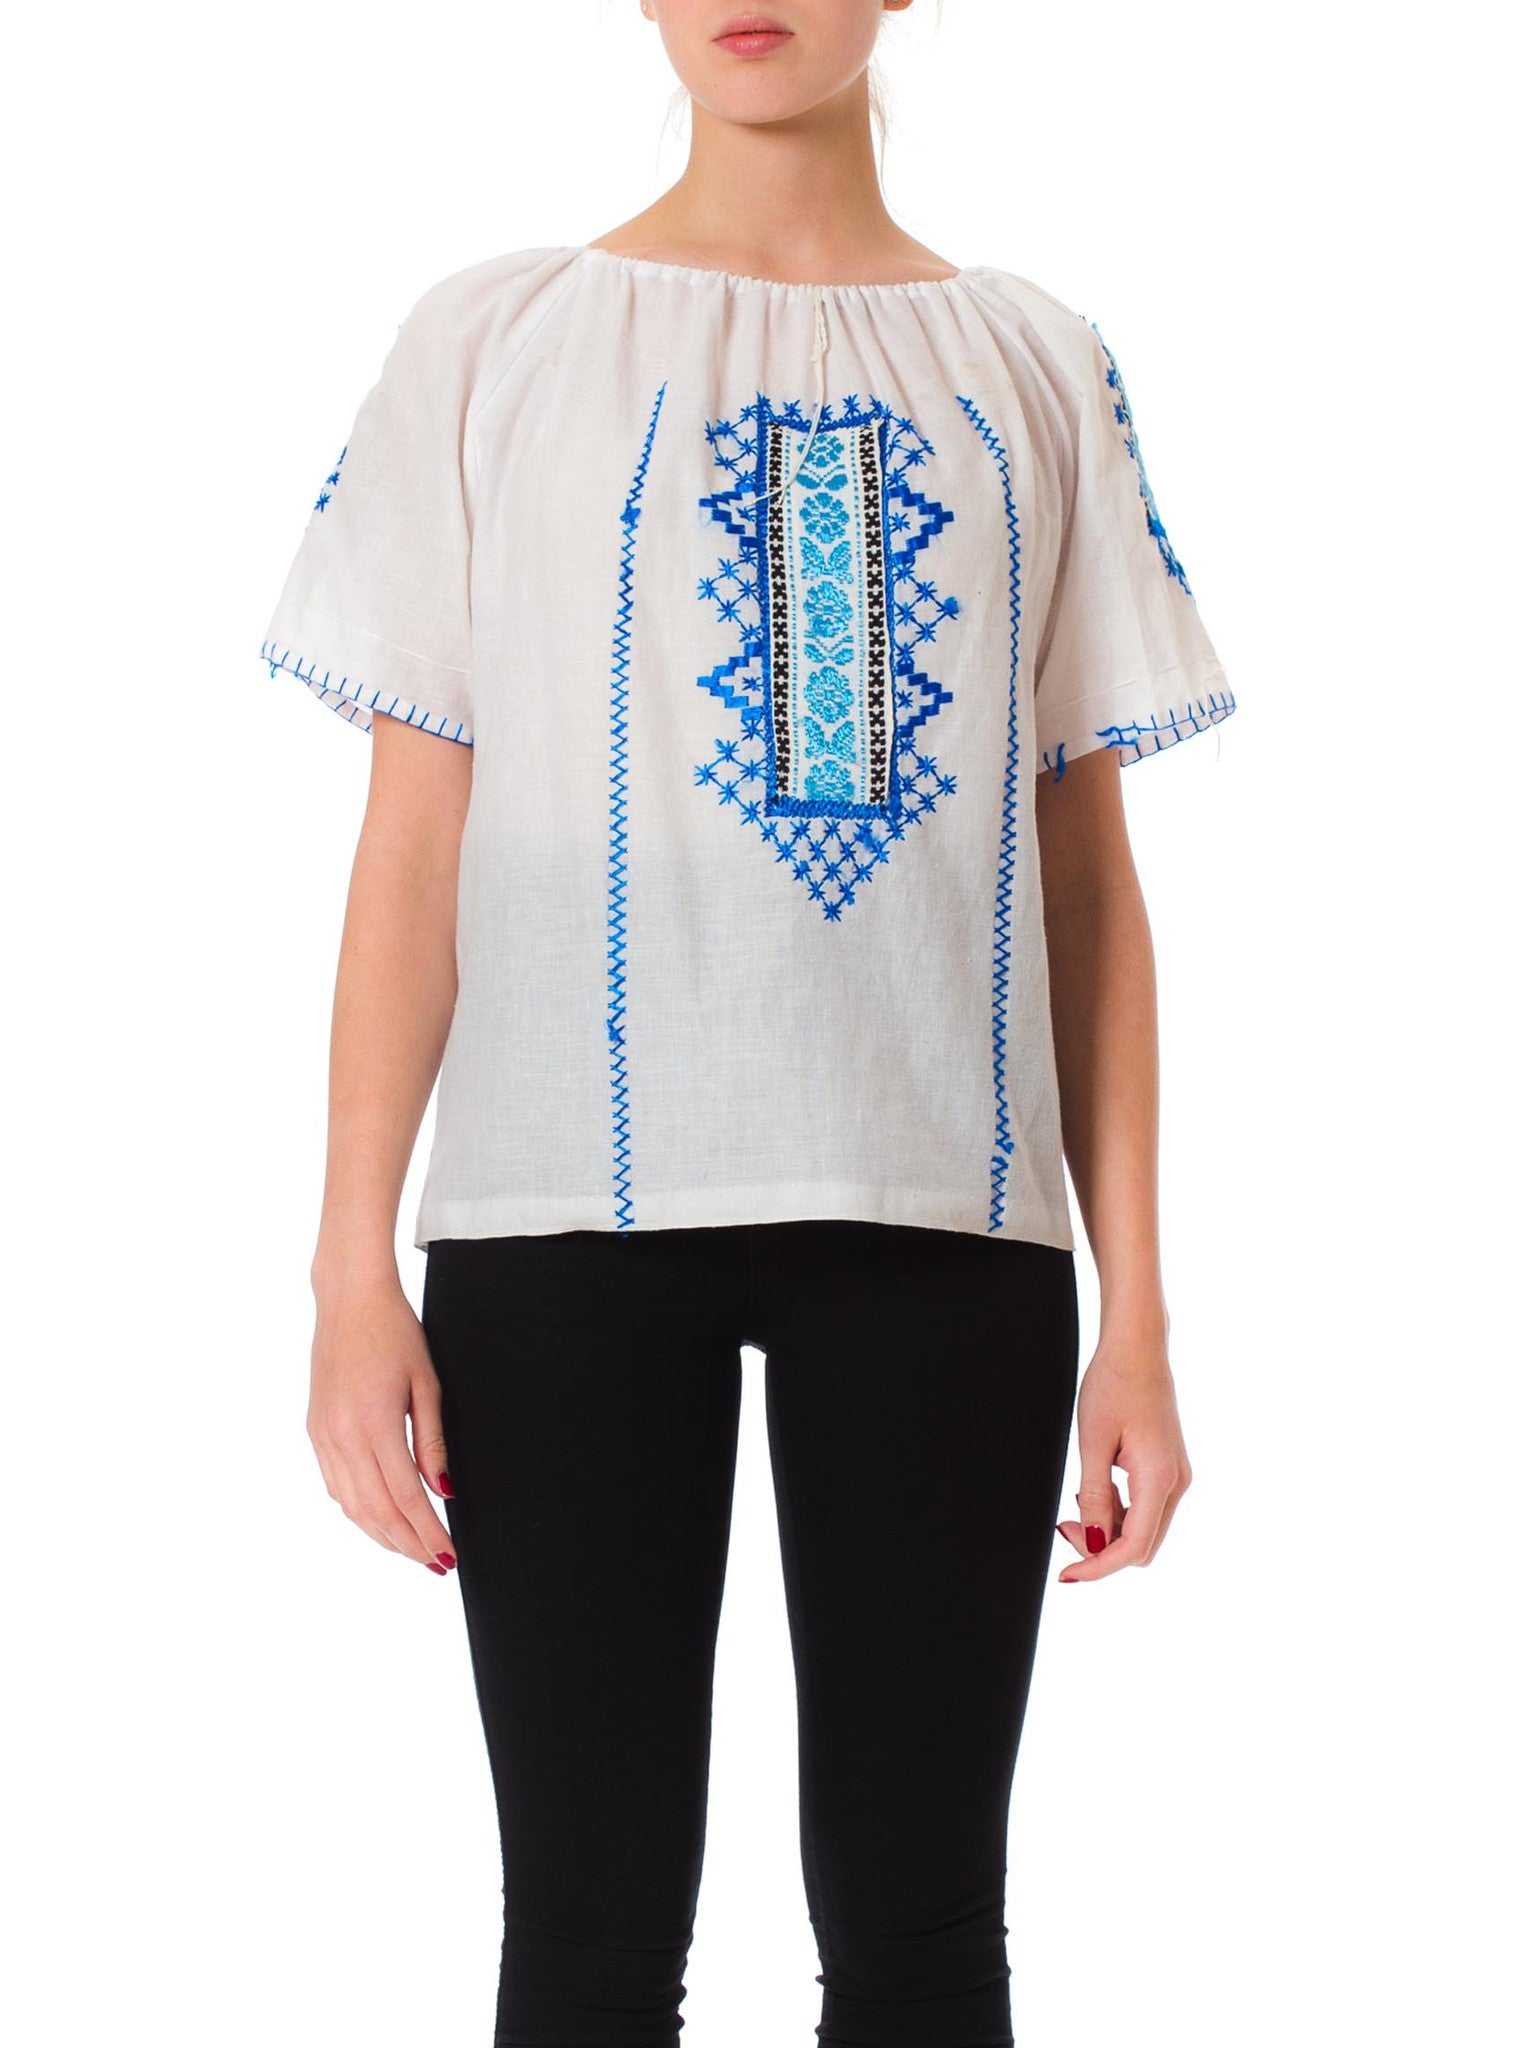 1970s Boho Ethnic Embroidered Peasant Style Short Sleeve Blouse